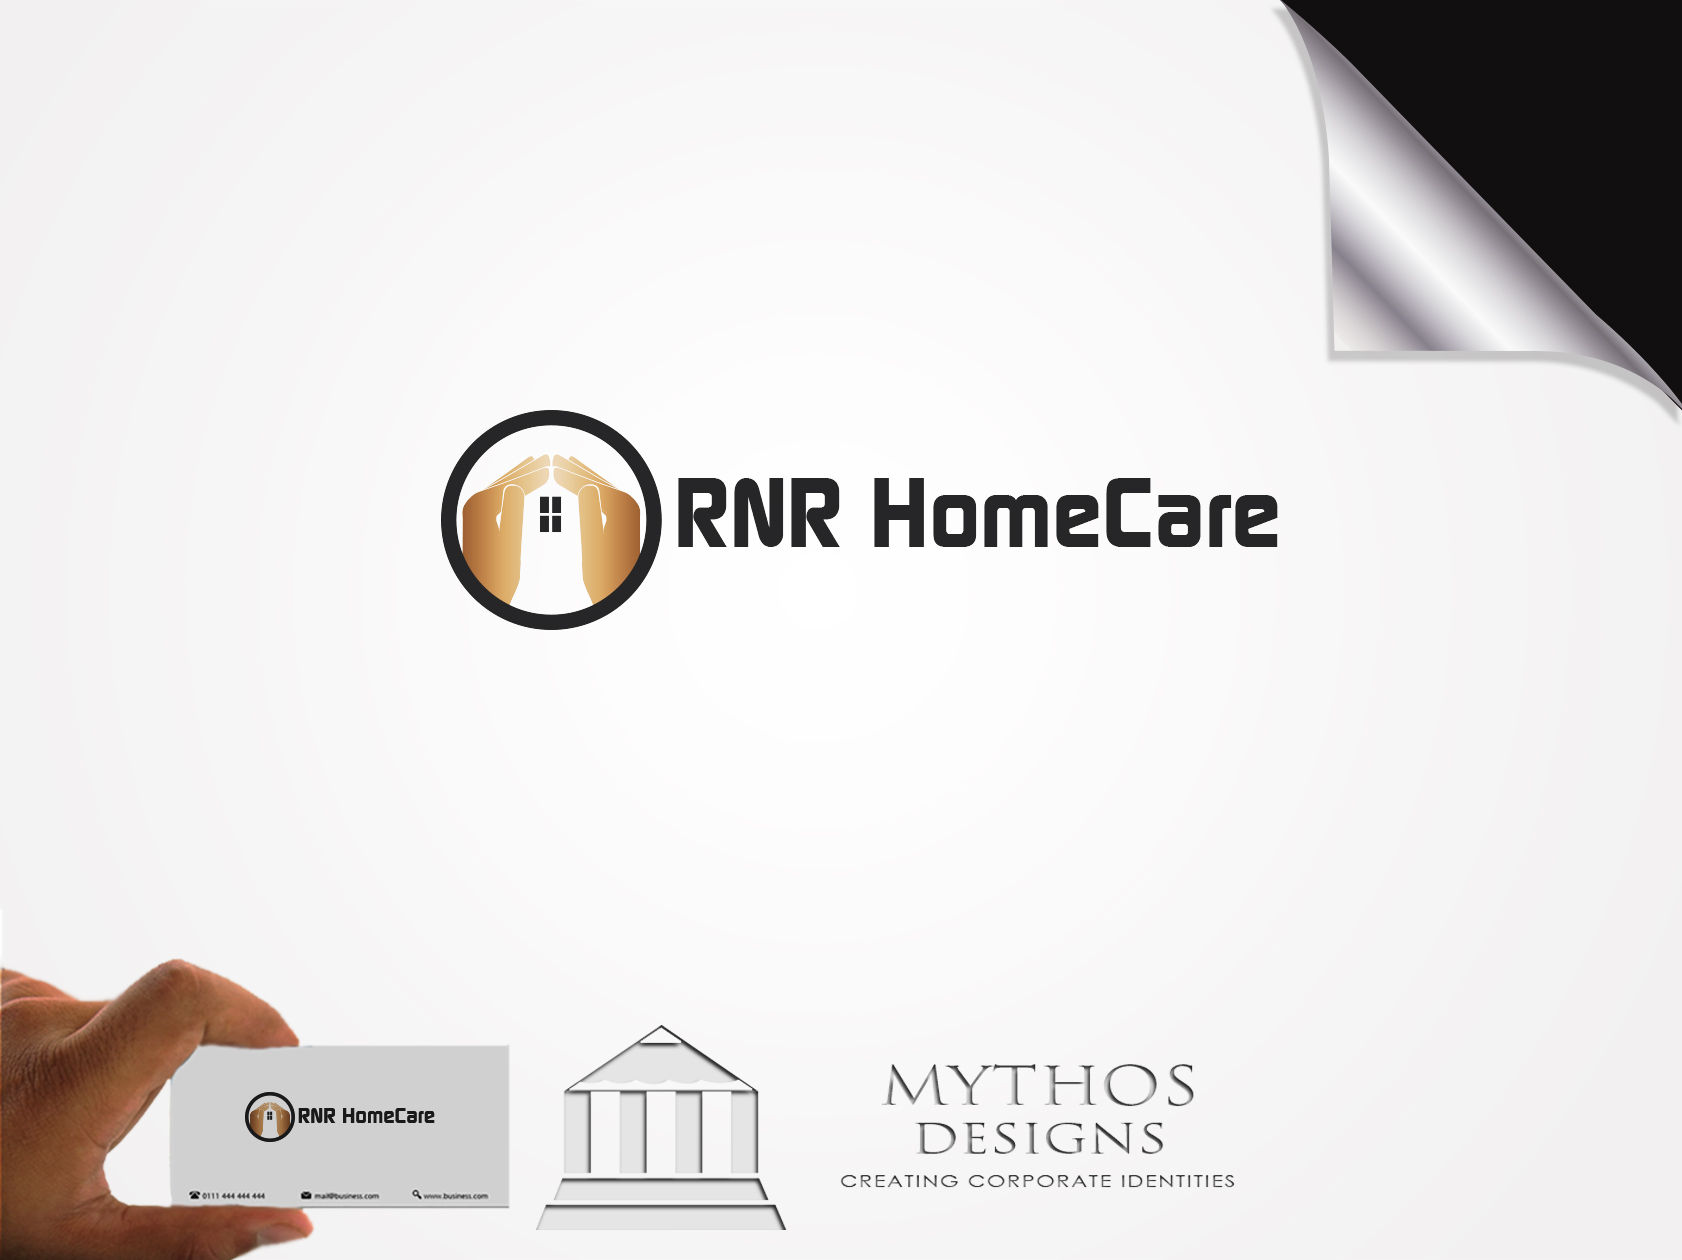 Logo Design by Mythos Designs - Entry No. 81 in the Logo Design Contest Imaginative Logo Design for RNR HomeCare.